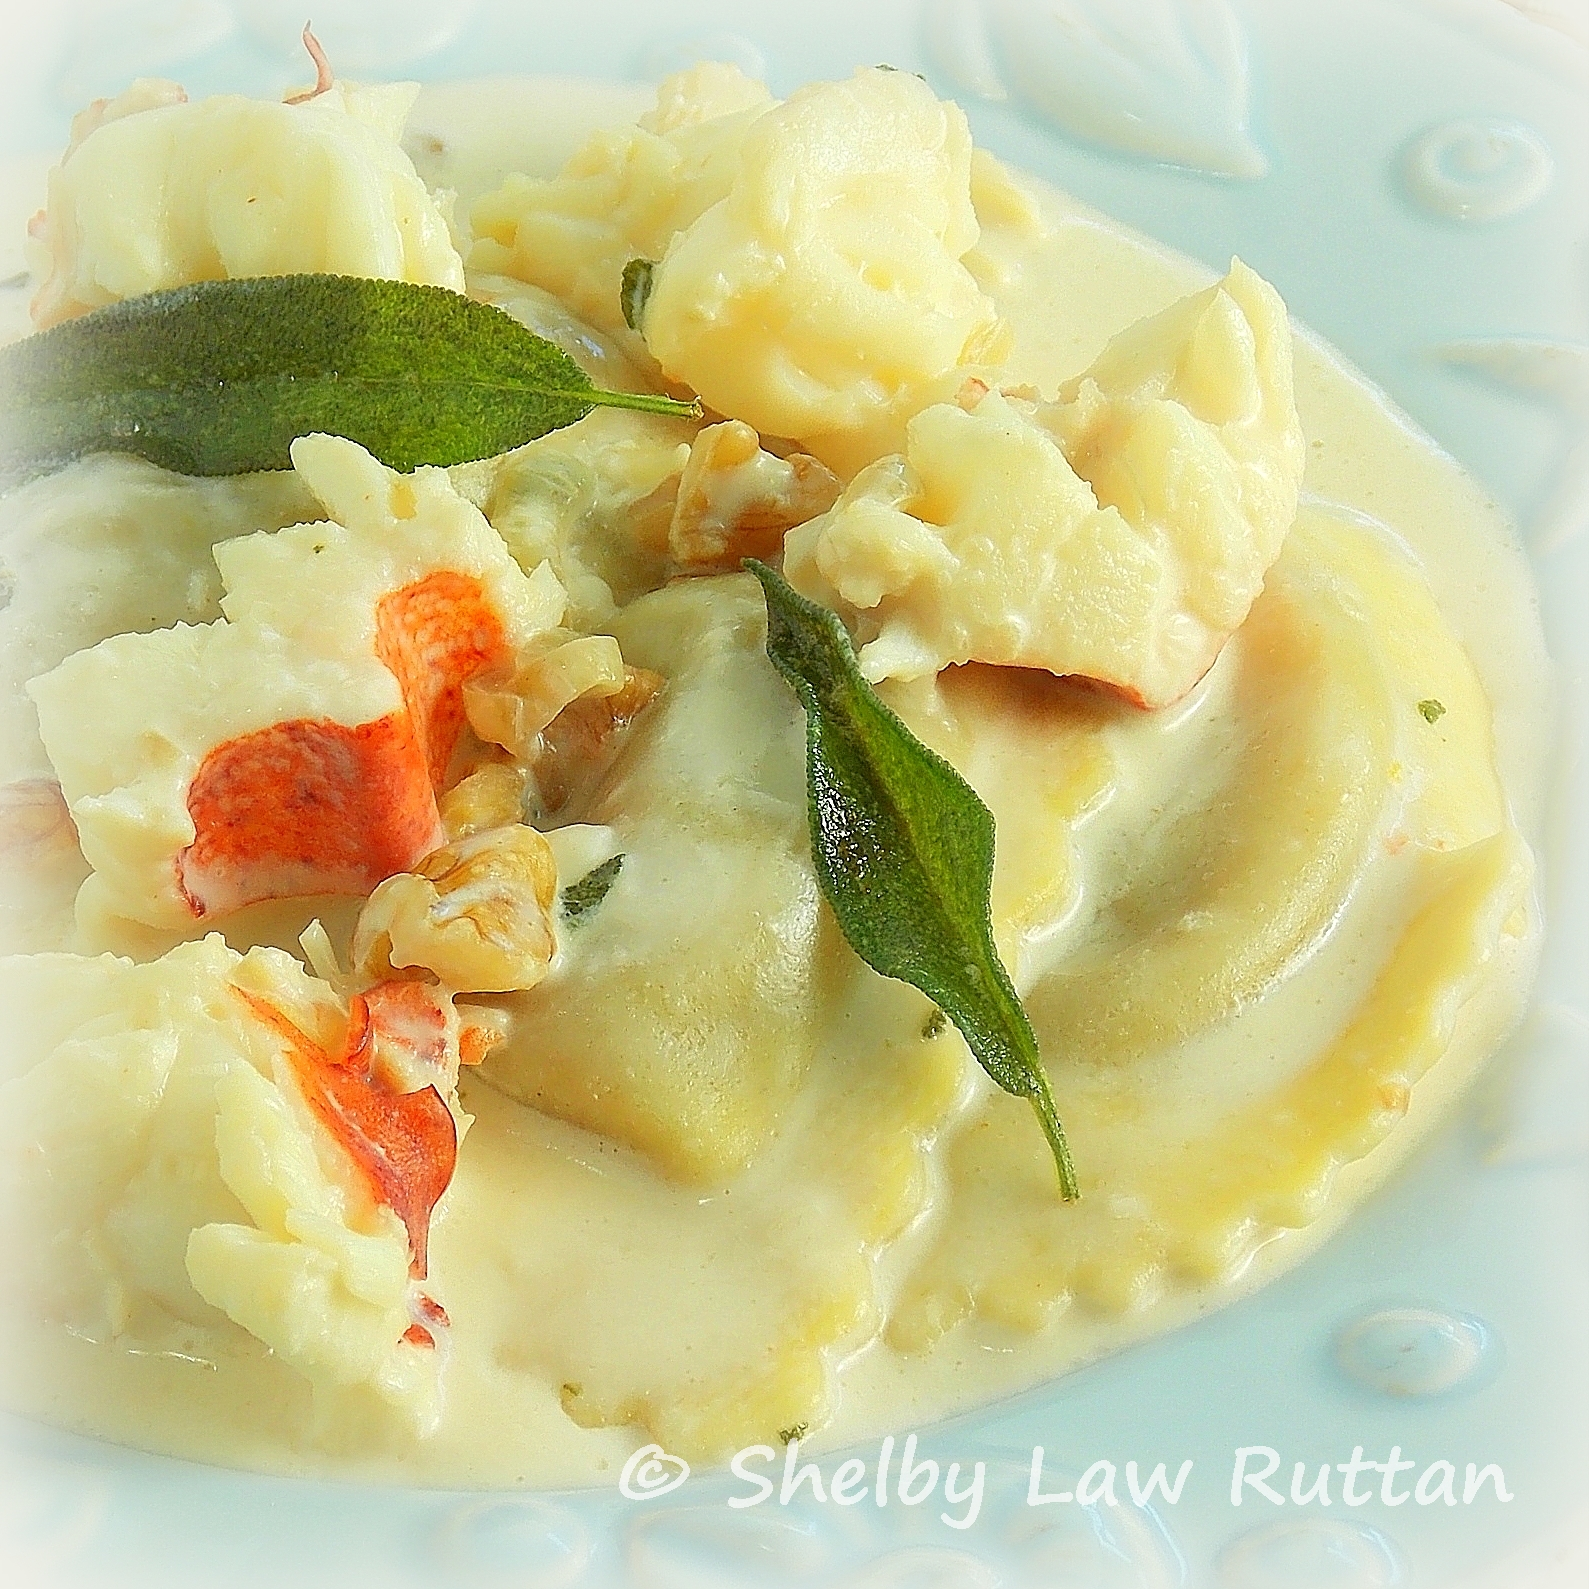 Buitoni Butternut Squash Ravioli with Lobster Sage Cream Sauce ...